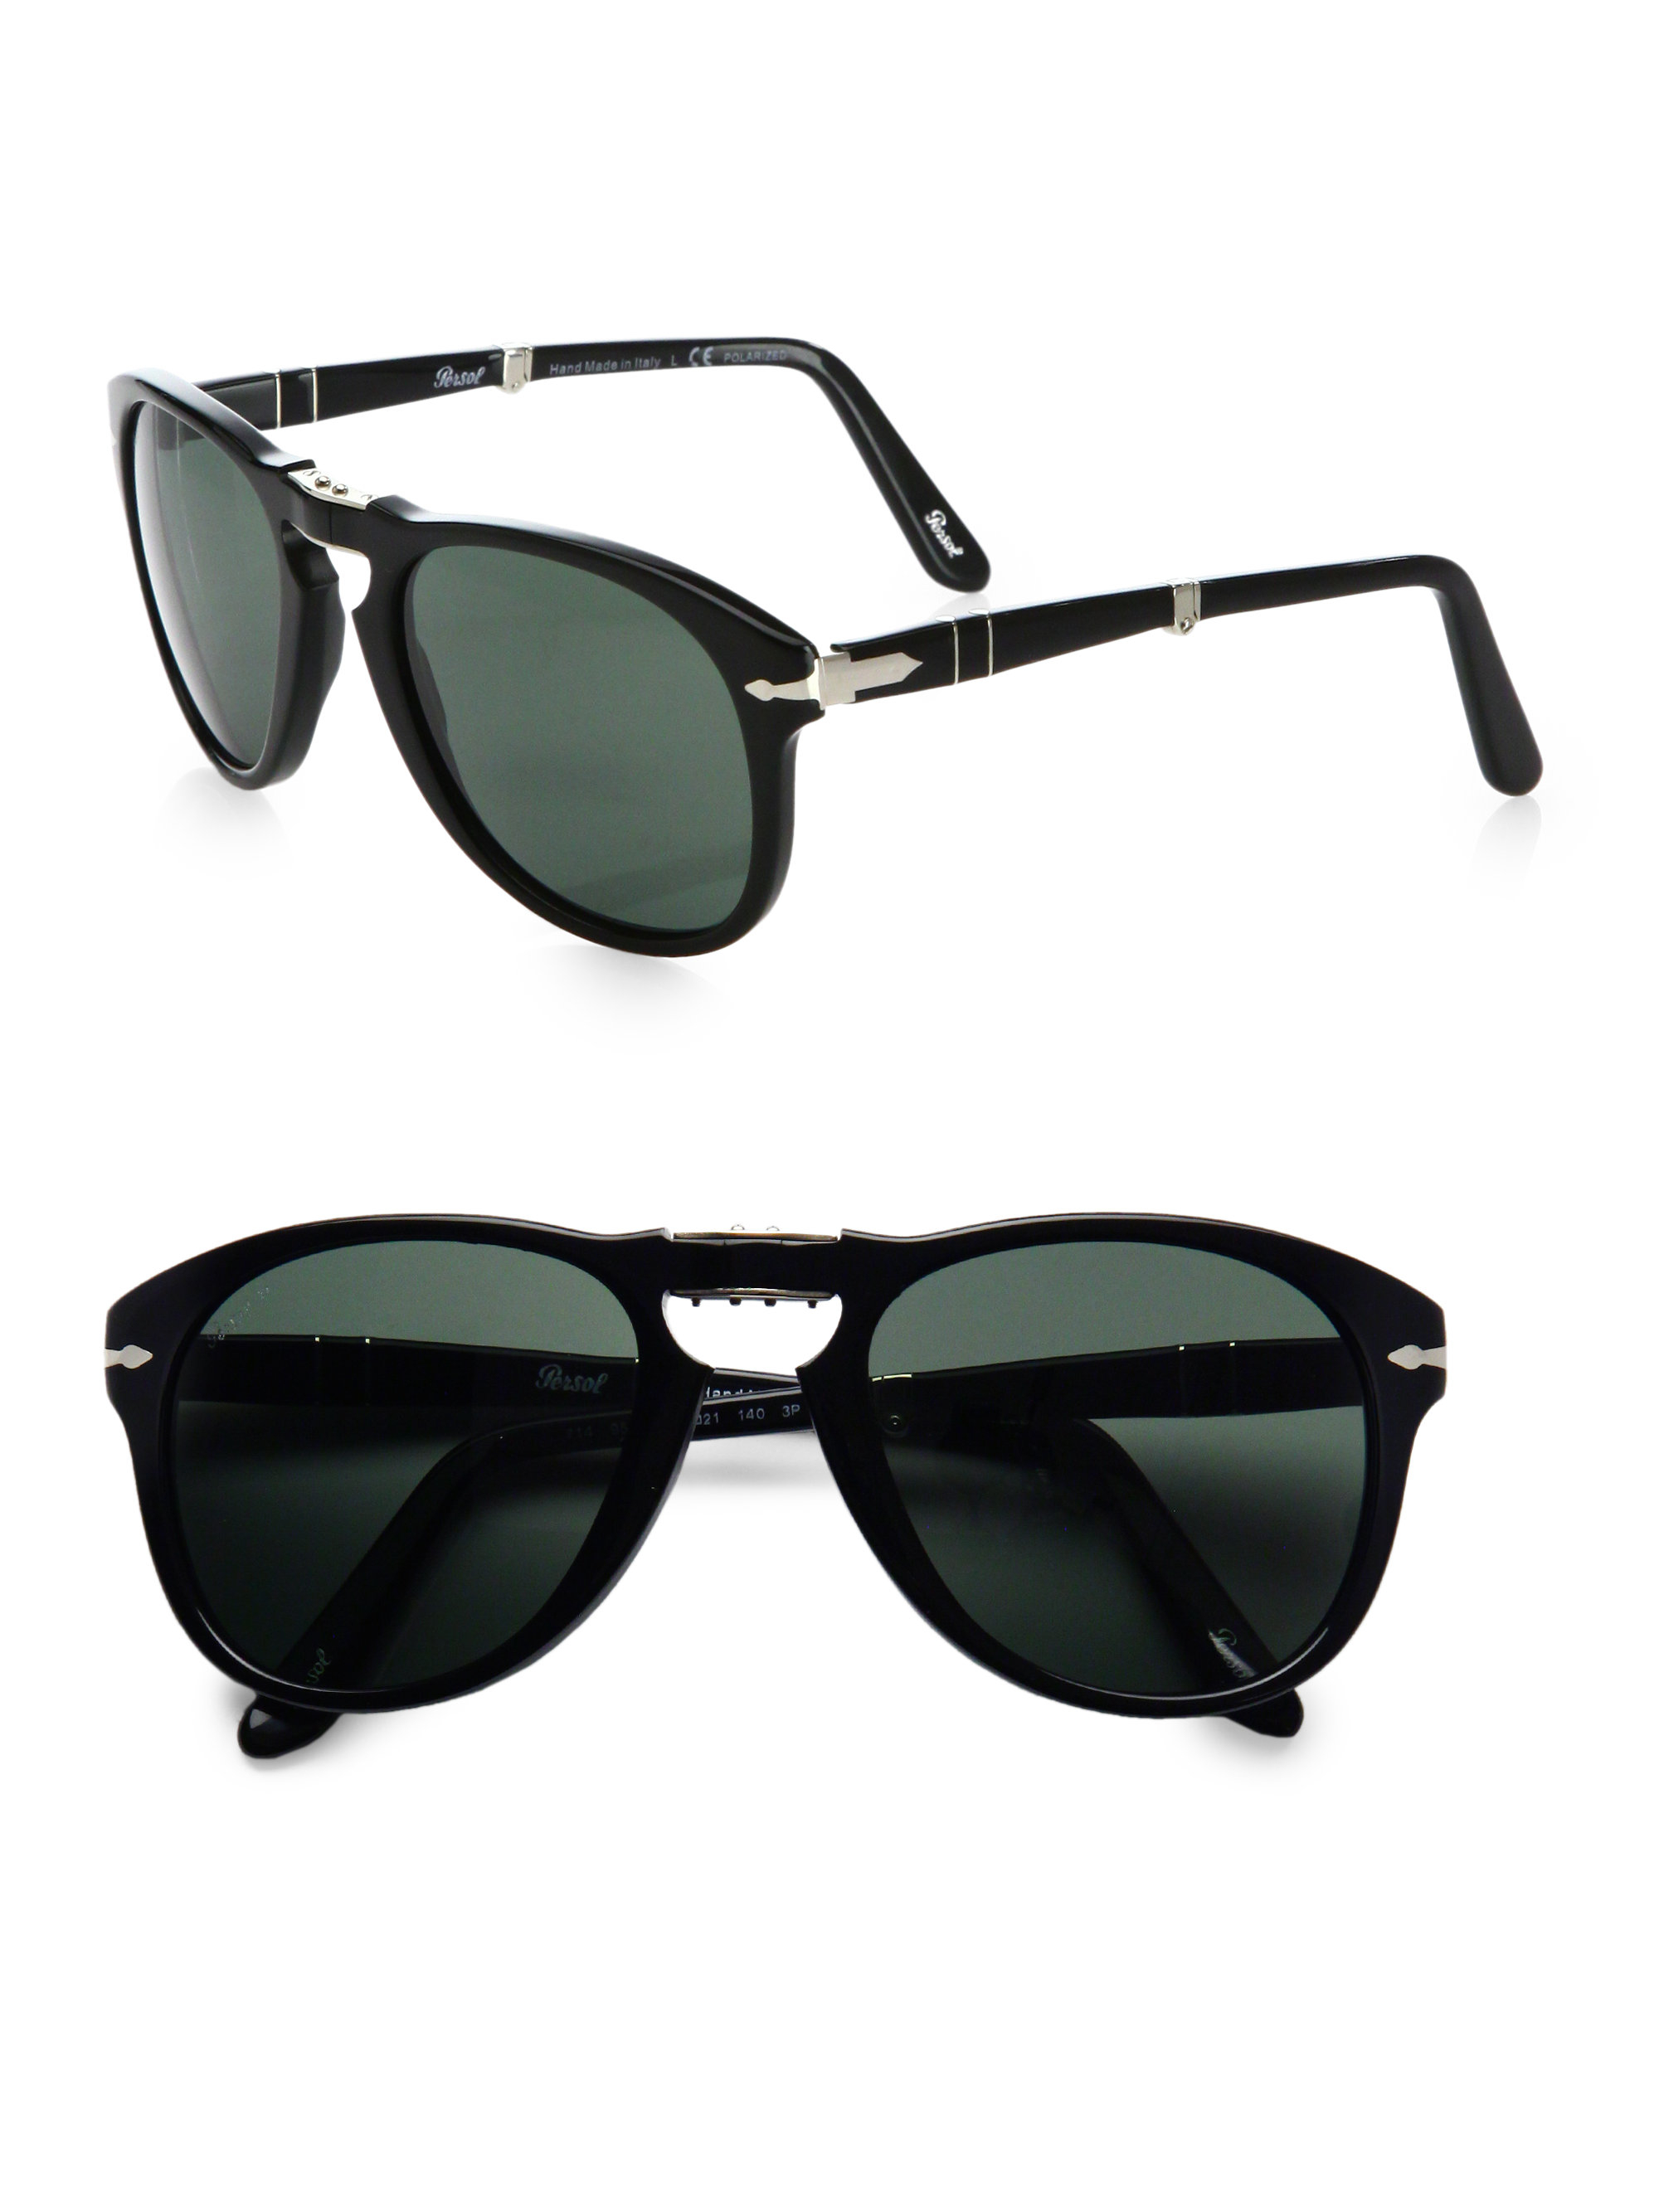 1e4e979687 image 0 Source · Lyst Persol Vintage Folding Keyhole Sunglasses in Black  for Men